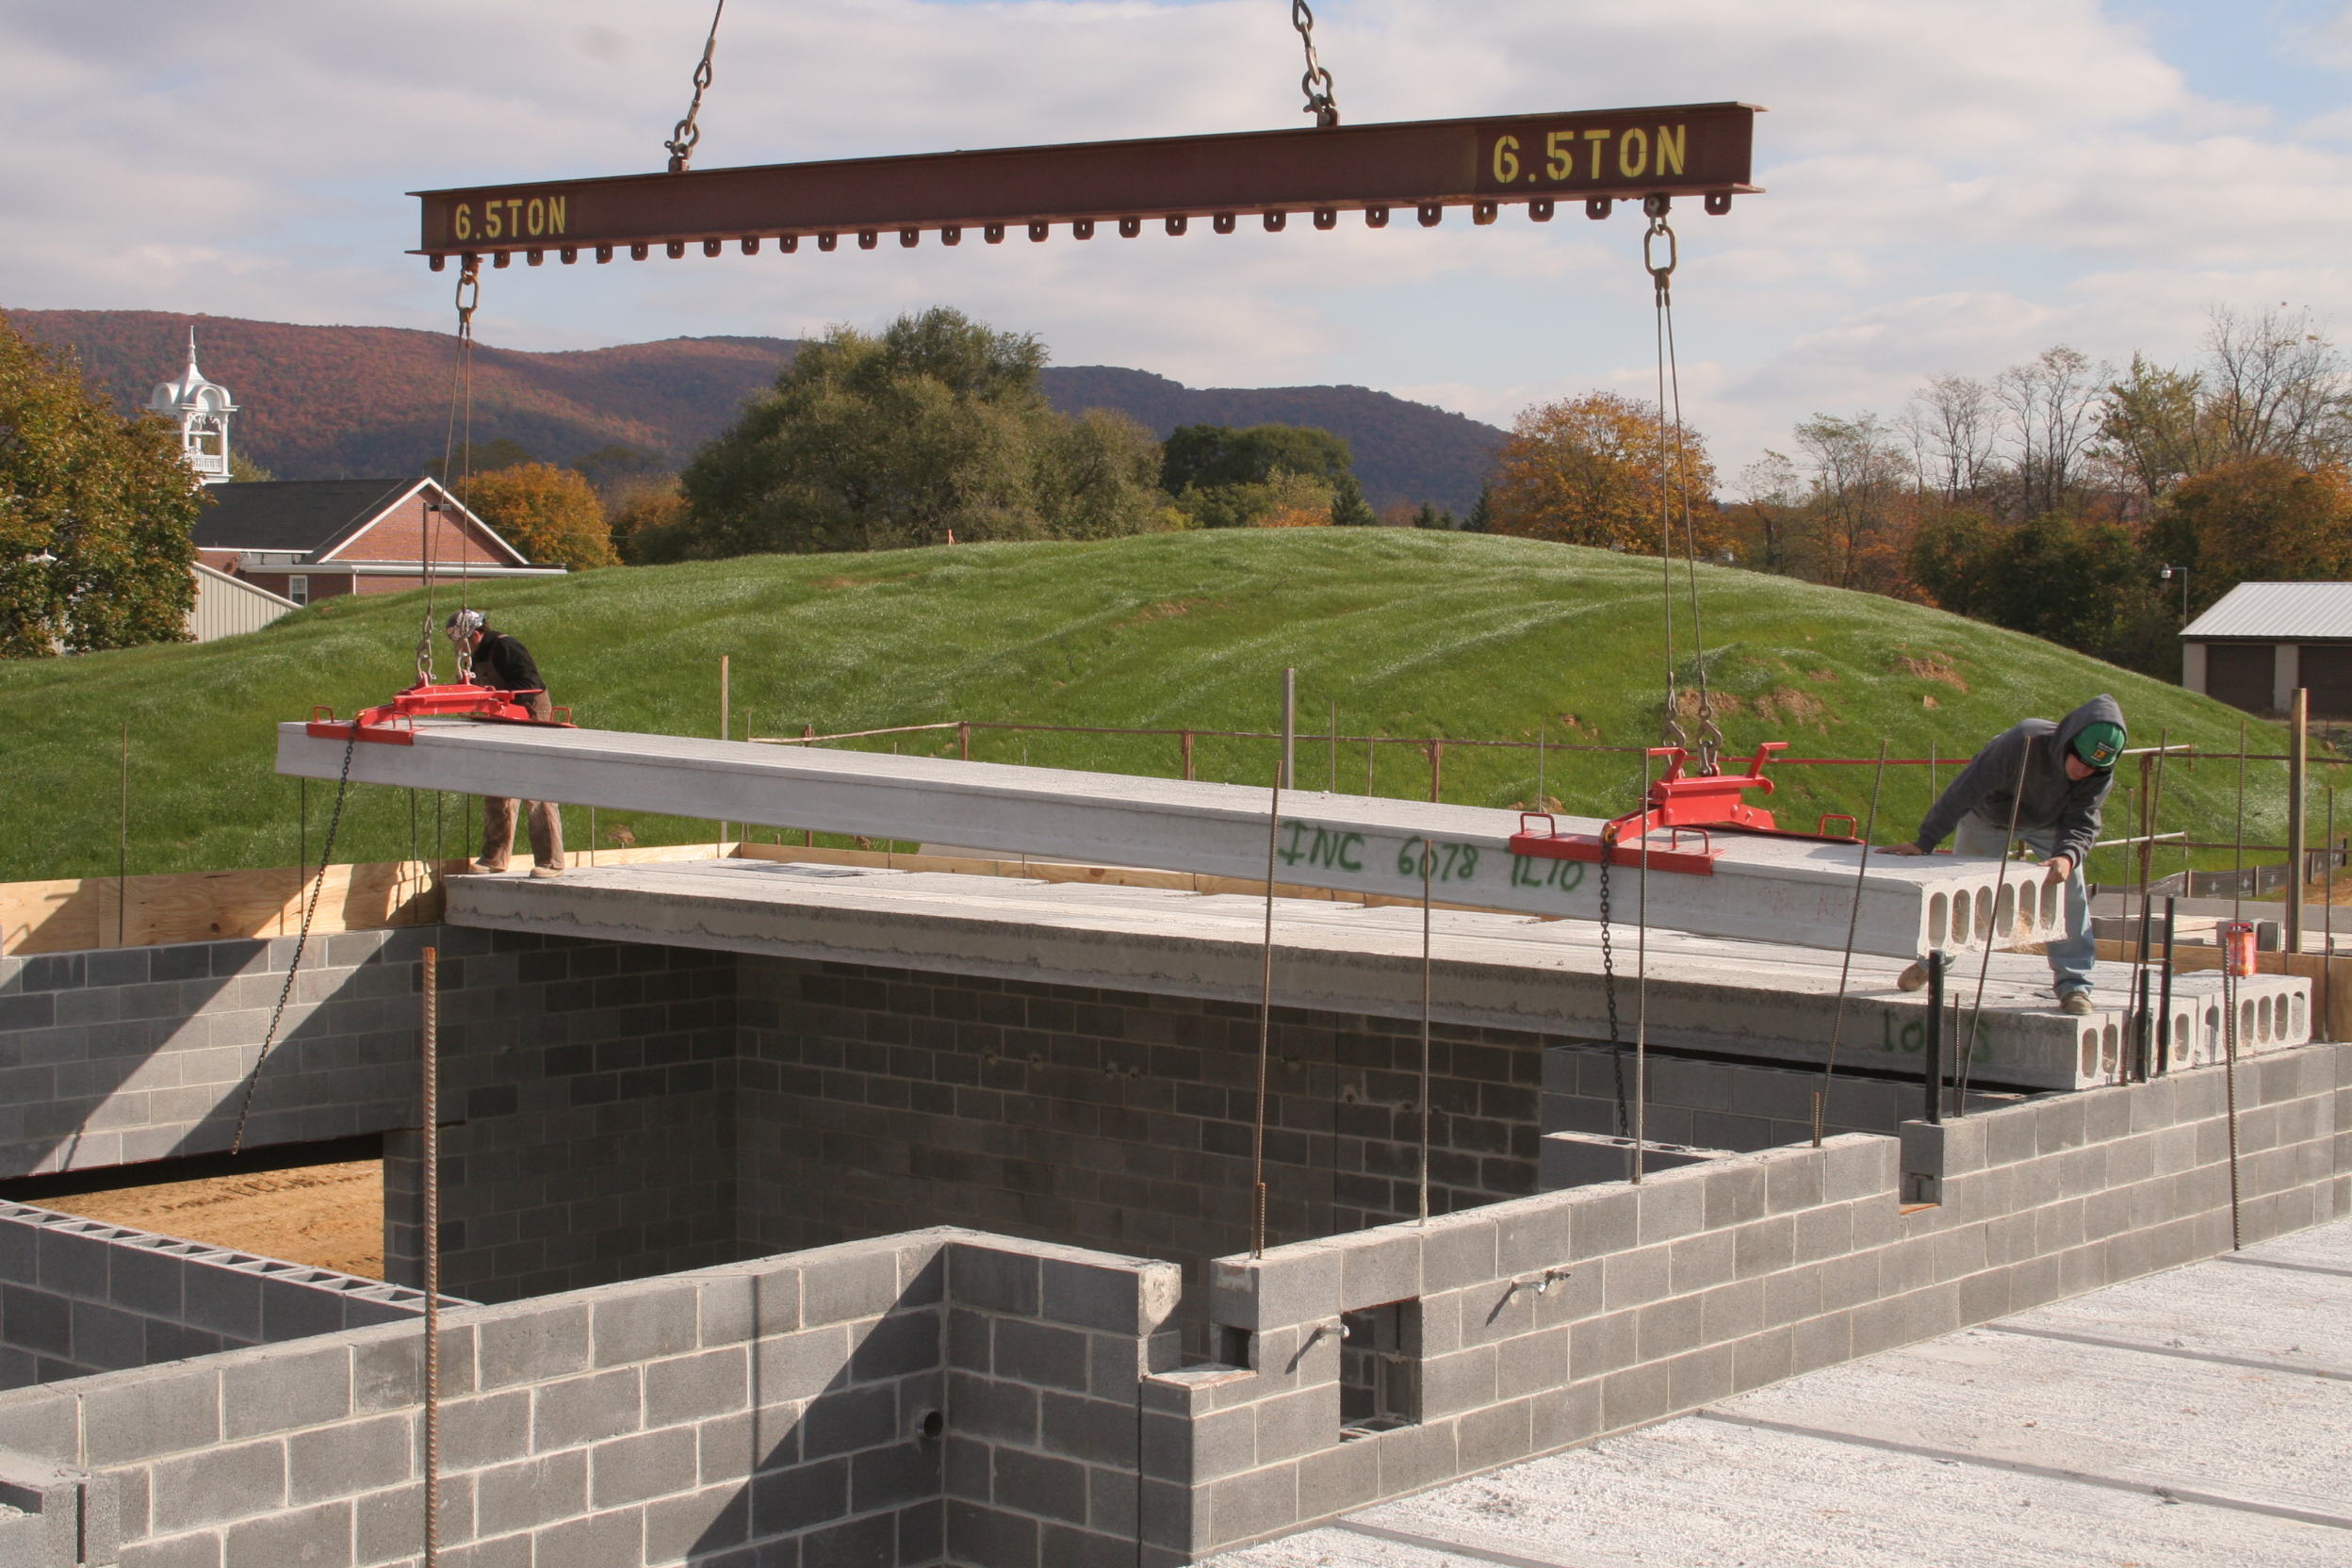 Hollowcore being placed on top of concrete blocks during construction